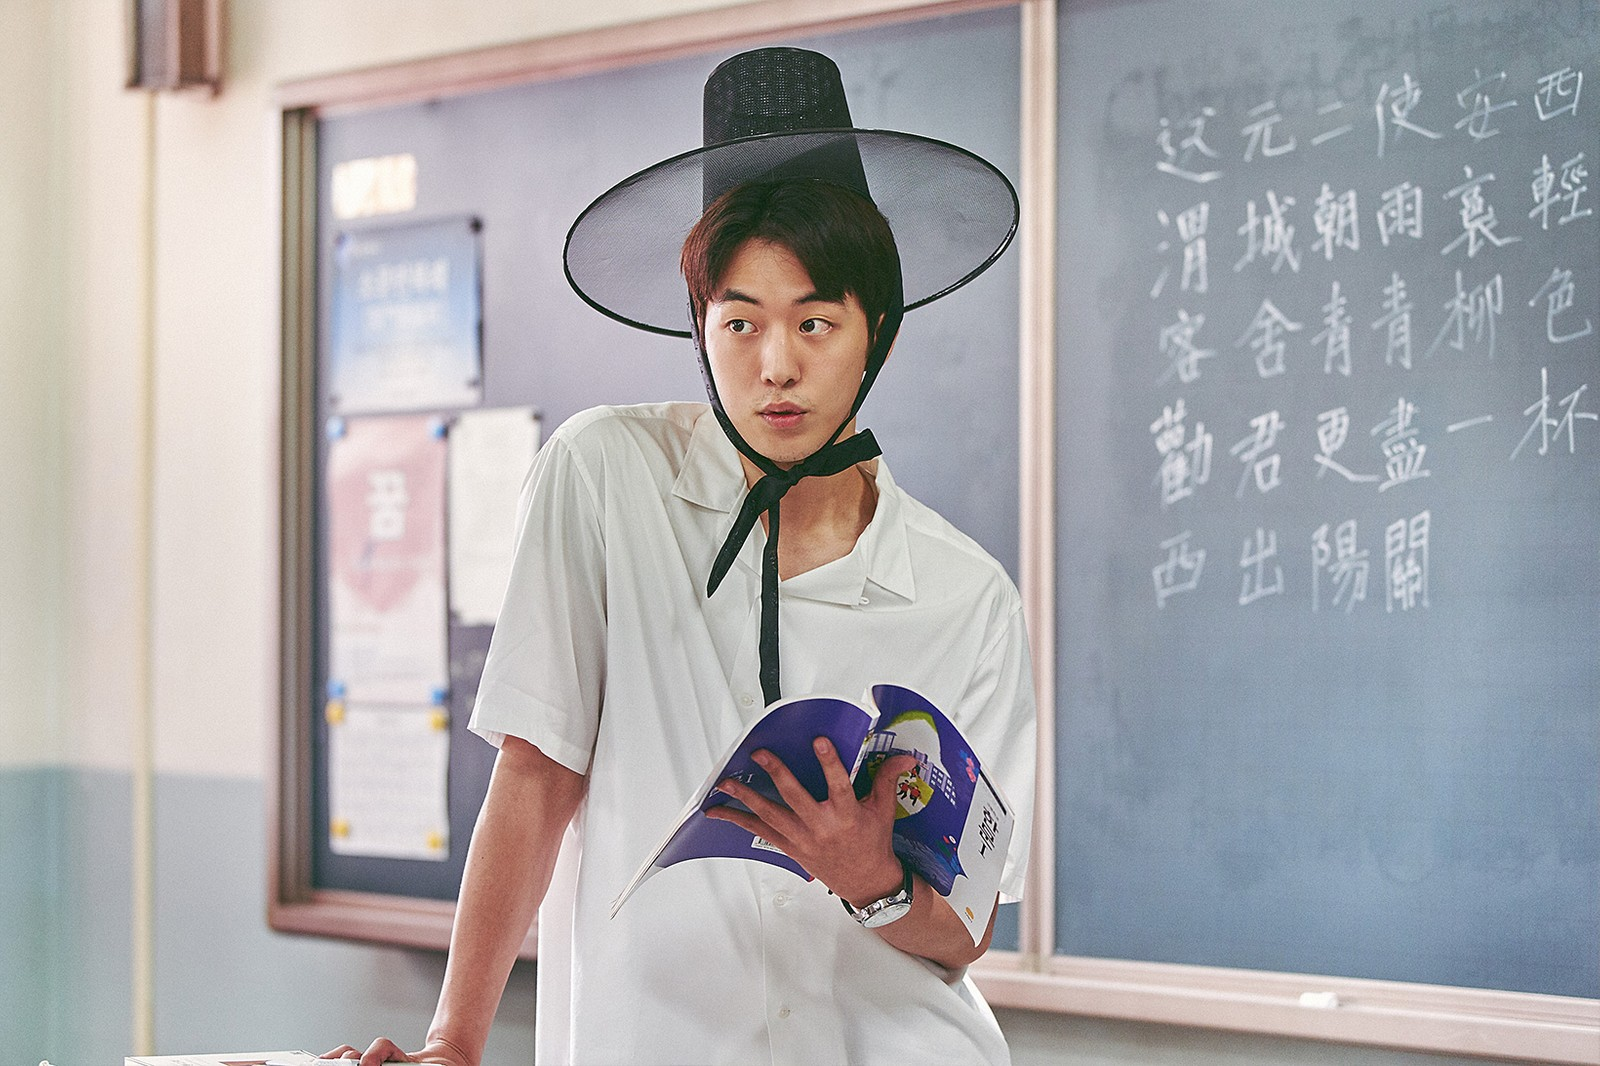 netflix the school nurse files k-drama nam joohyuk hong inpyo school